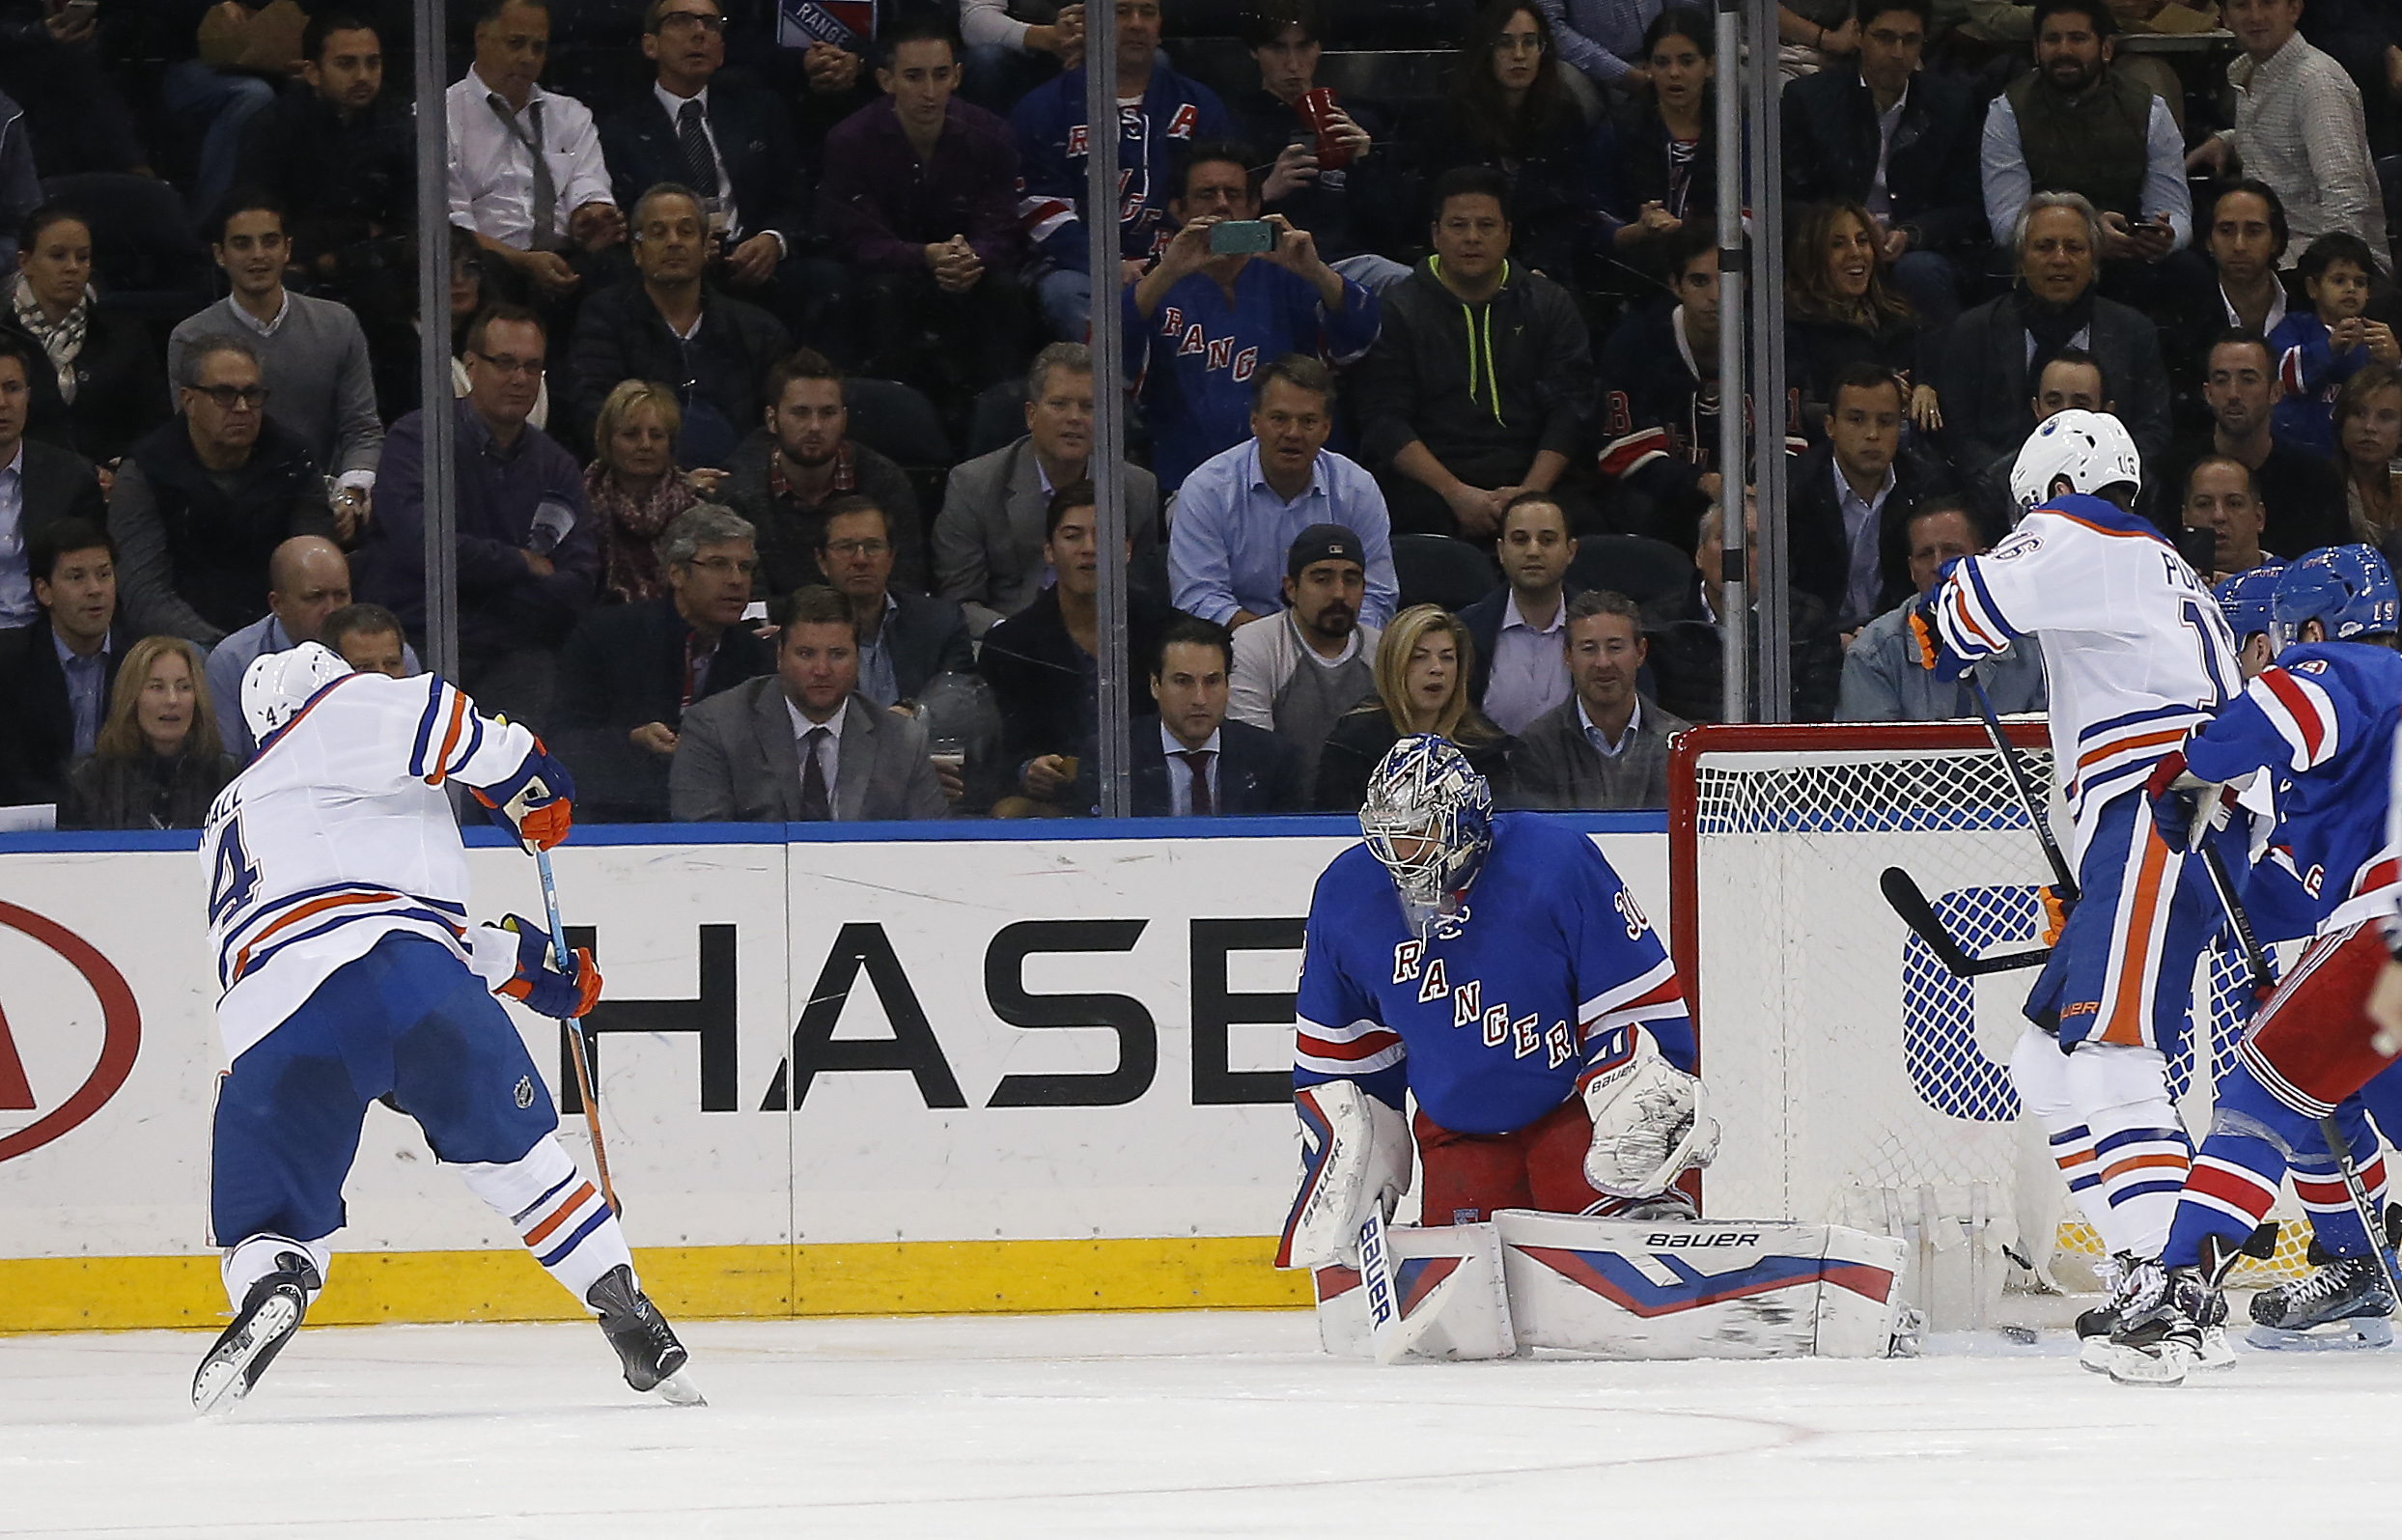 Edmonton Oilers left wing Taylor Hall (4) shoots and scores against the New York Rangers goalie Henrik Lundqvist (30) during the second period of an NHL hockey game, Tuesday, Dec. 15, 2015, in New York. (AP Photo/Julie Jacobson)